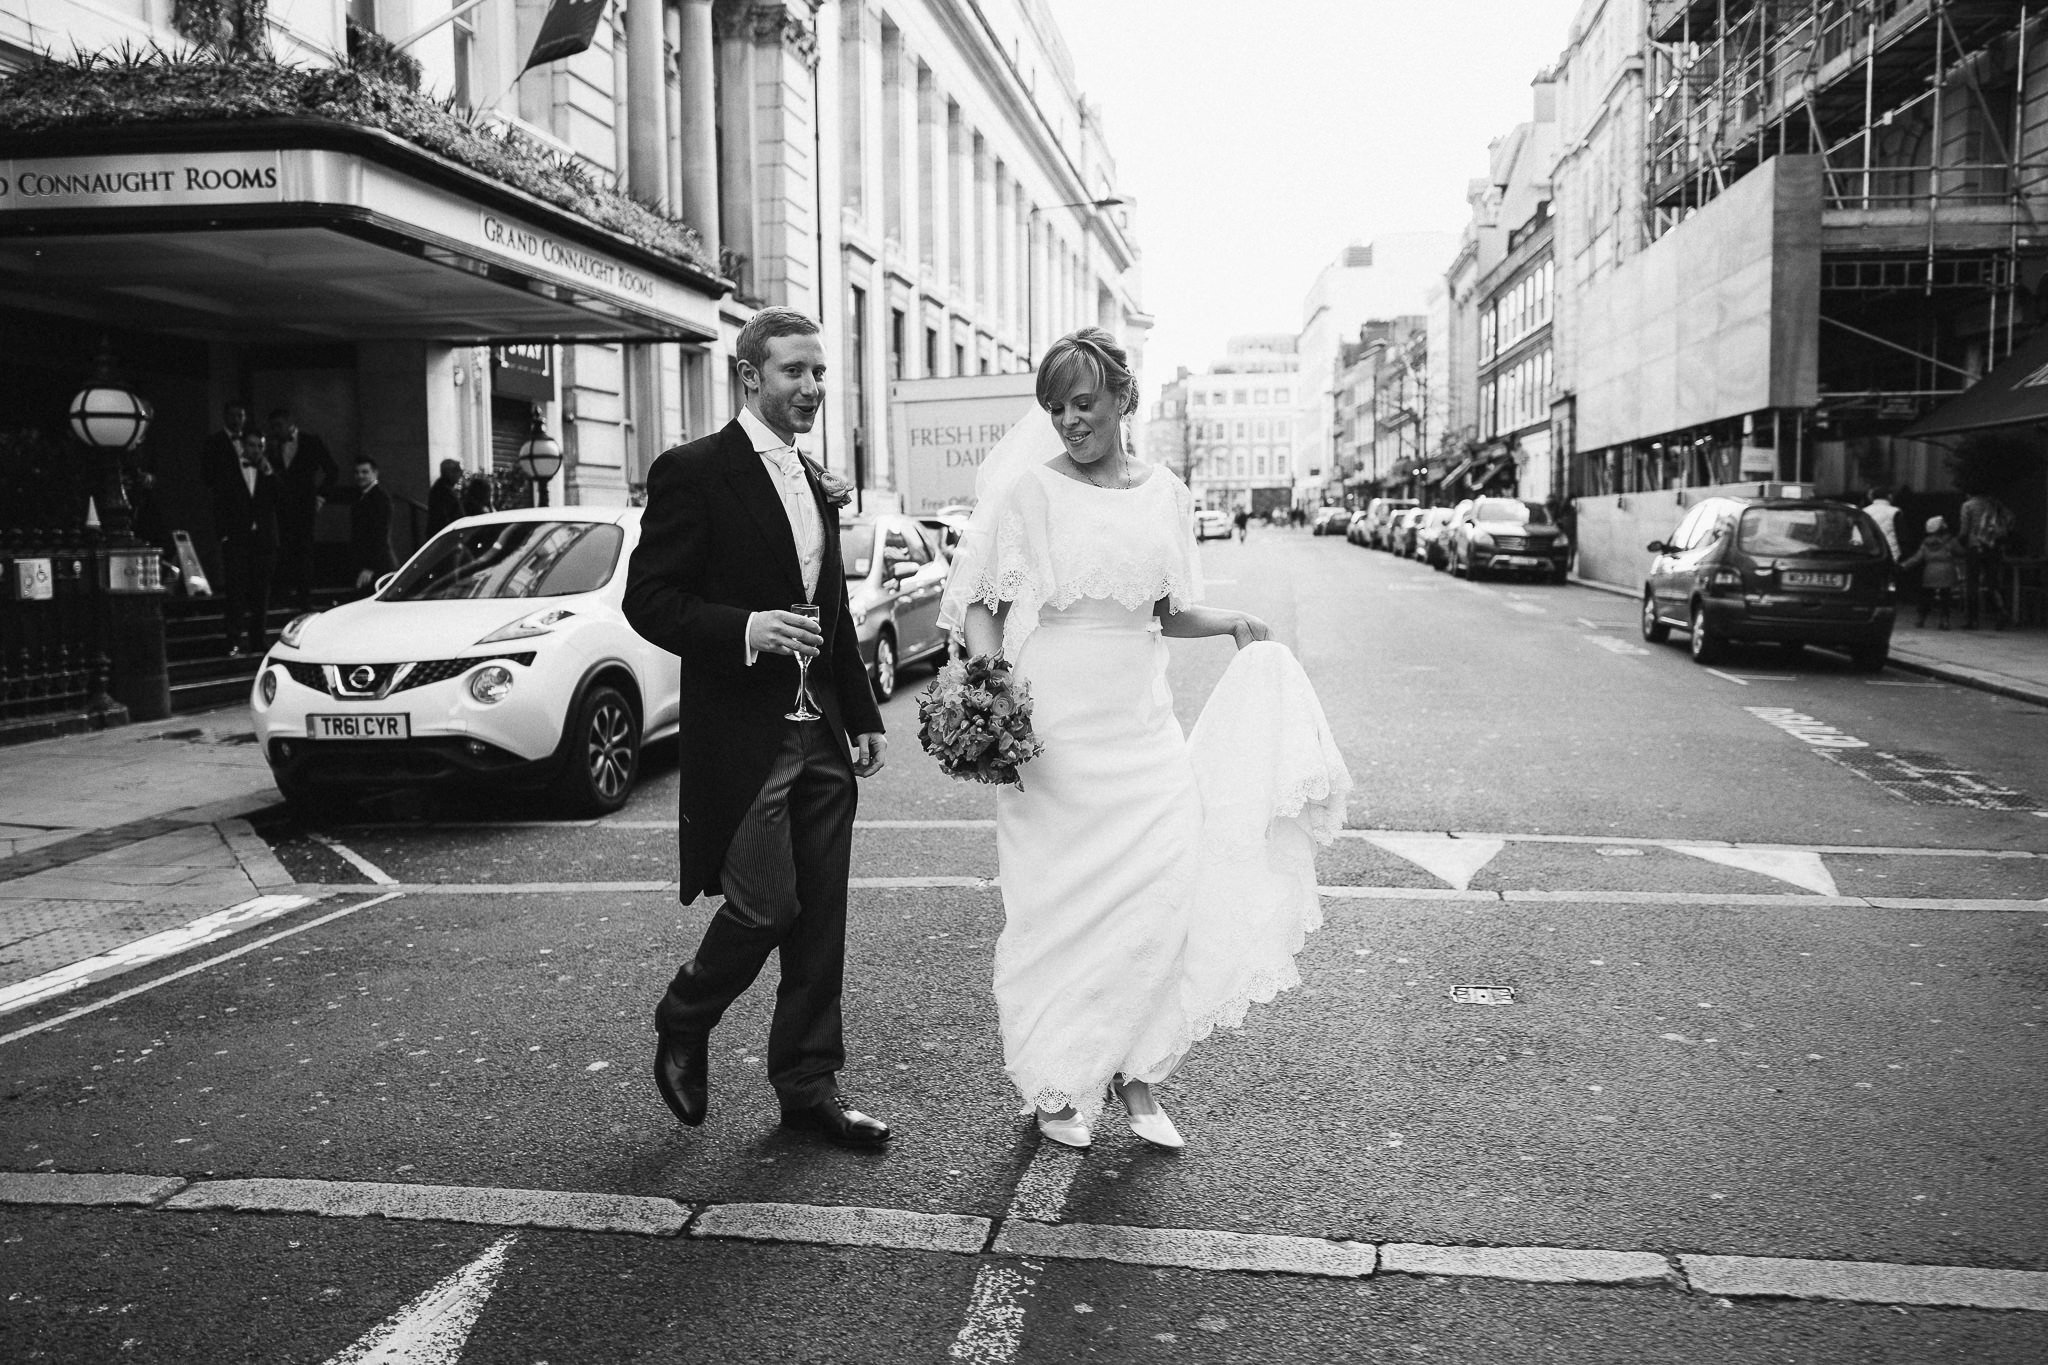 wedding at the grand connaught rooms